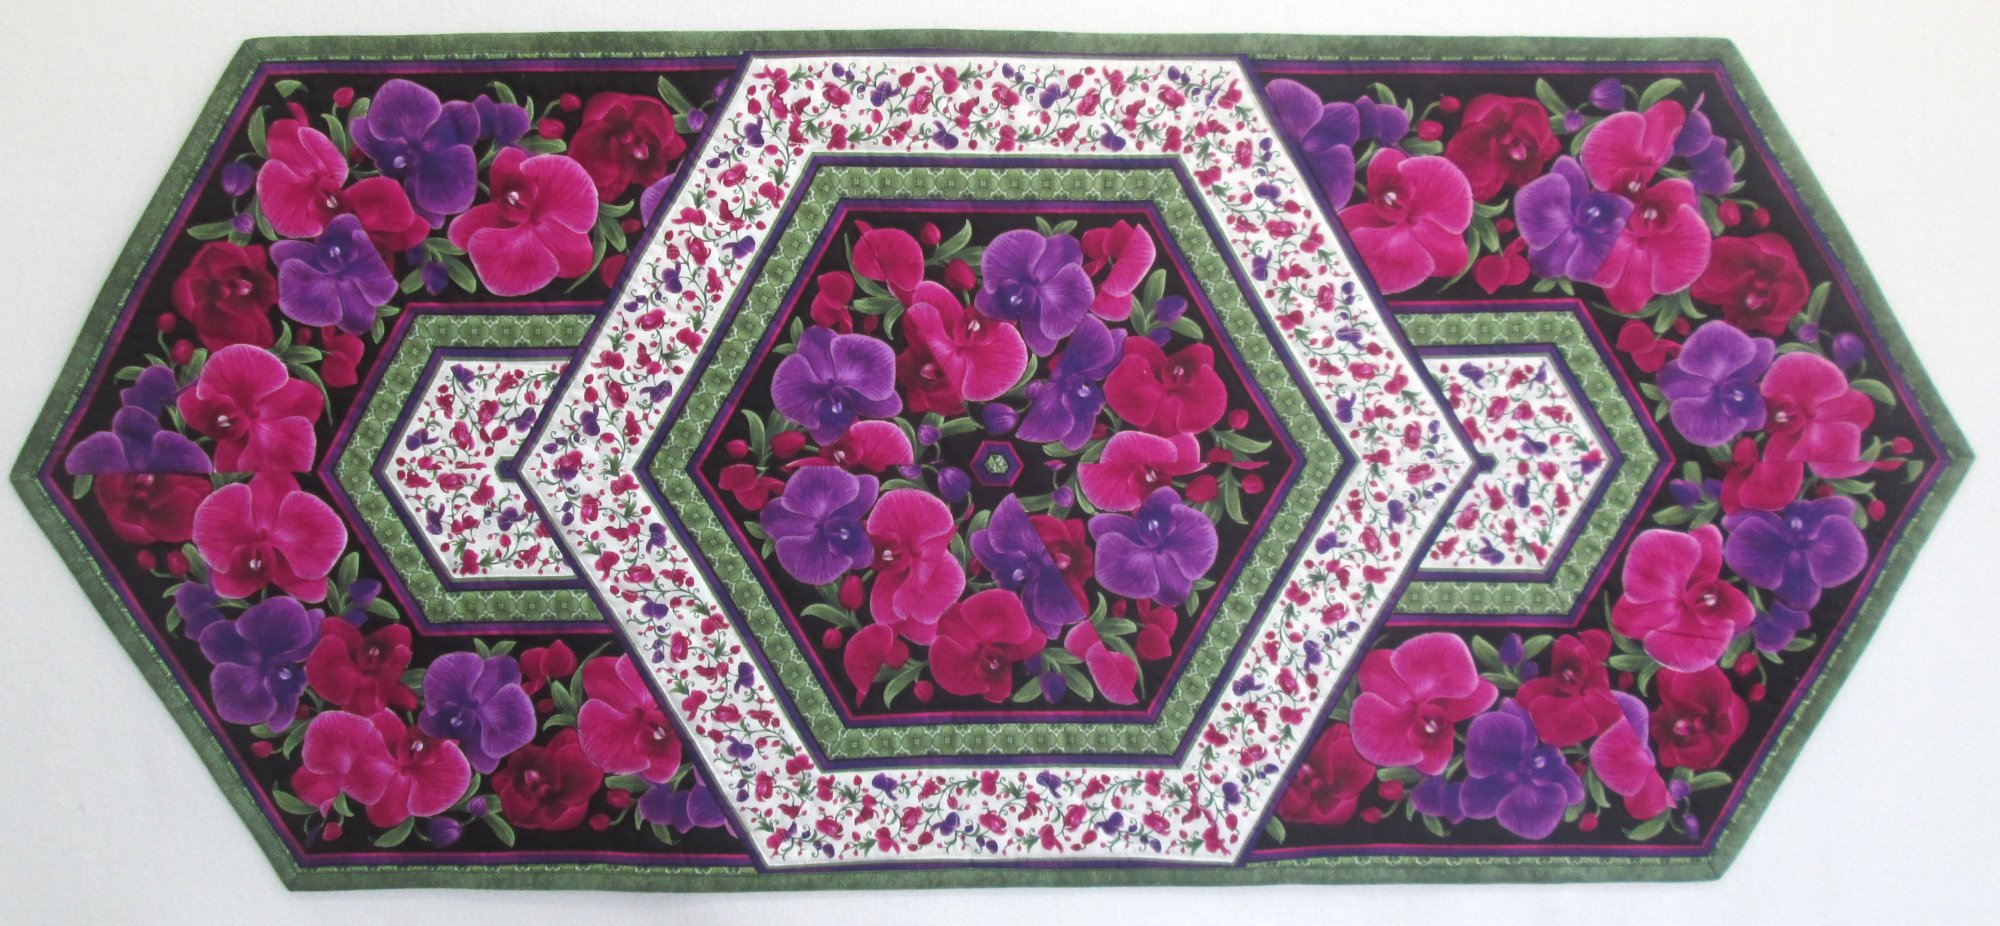 Wild Orchid Triangle Frenzy Table Runner Kit 19.75 x 45